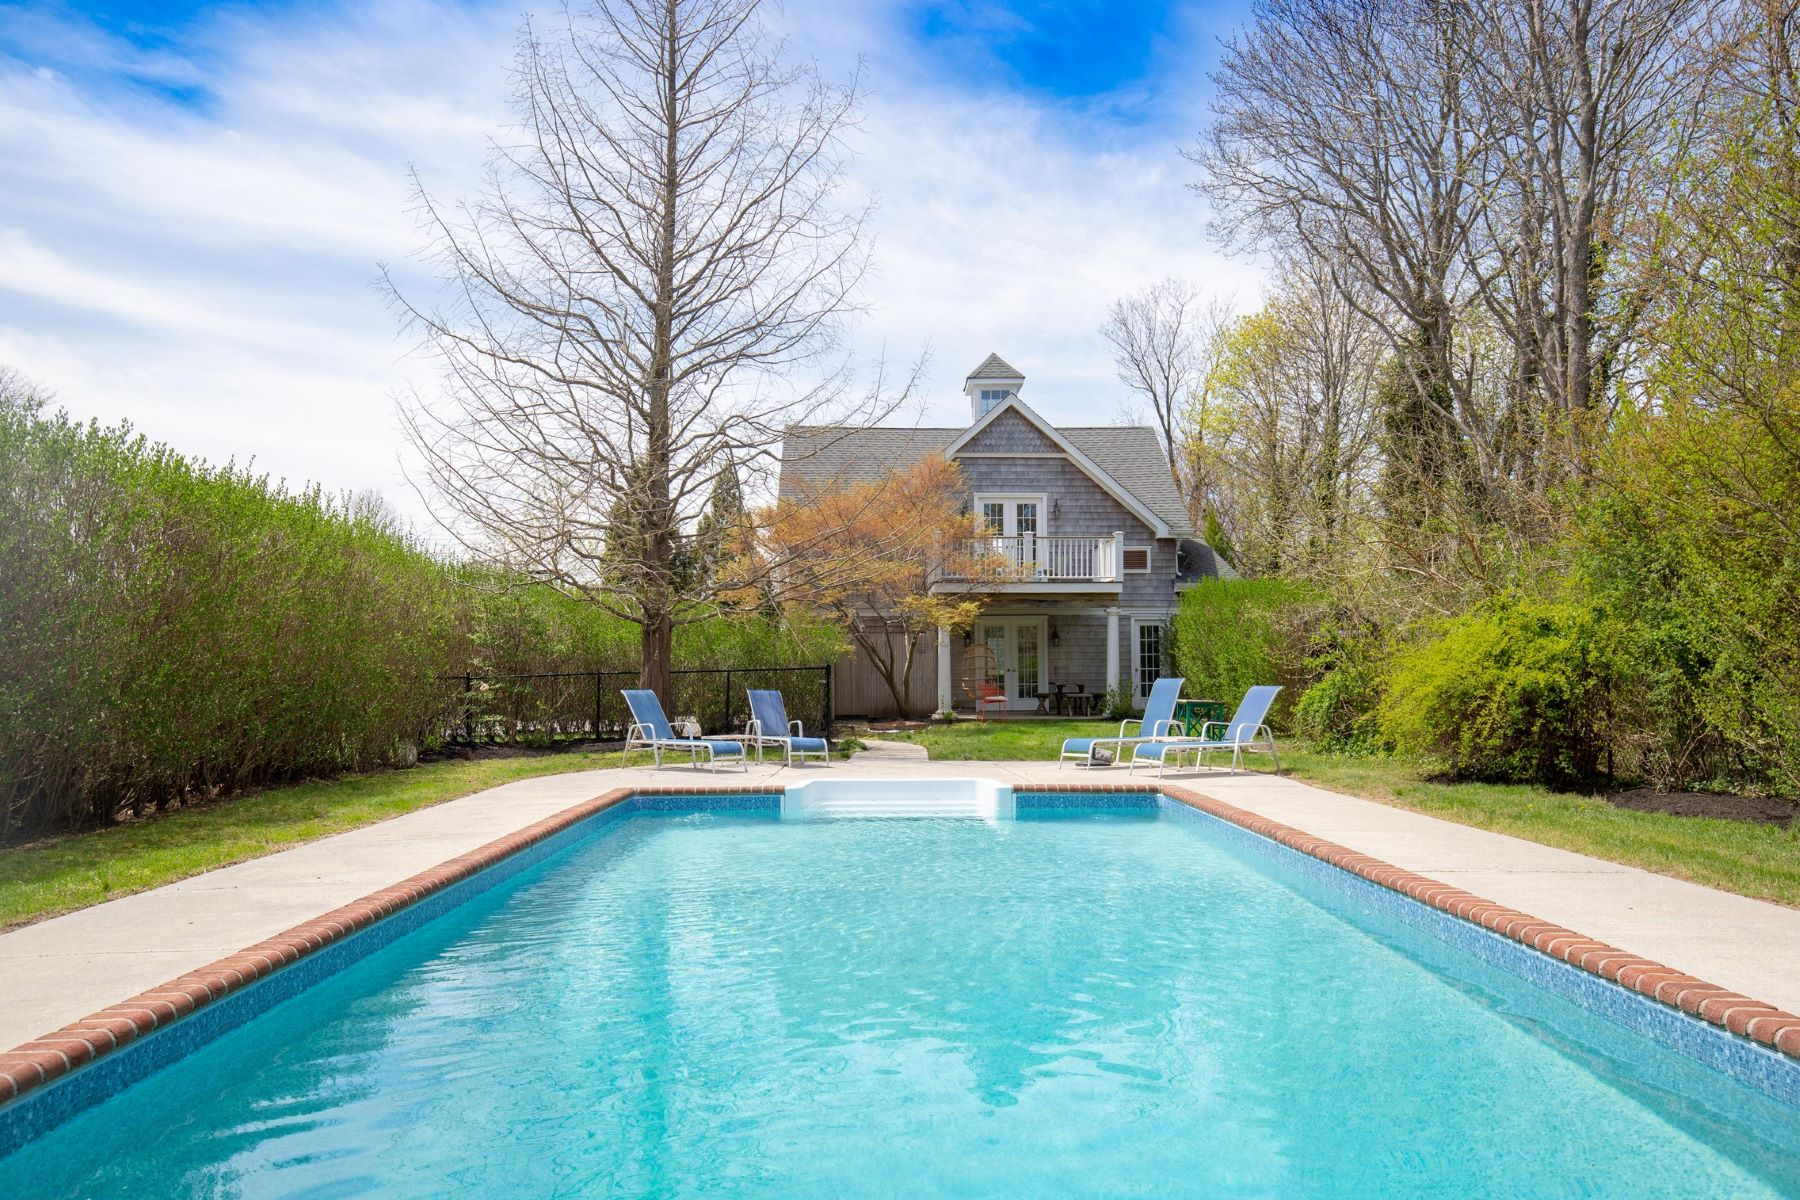 Single Family Home for Active at Southold 1450 Hortons Ln Southold, New York 11971 United States